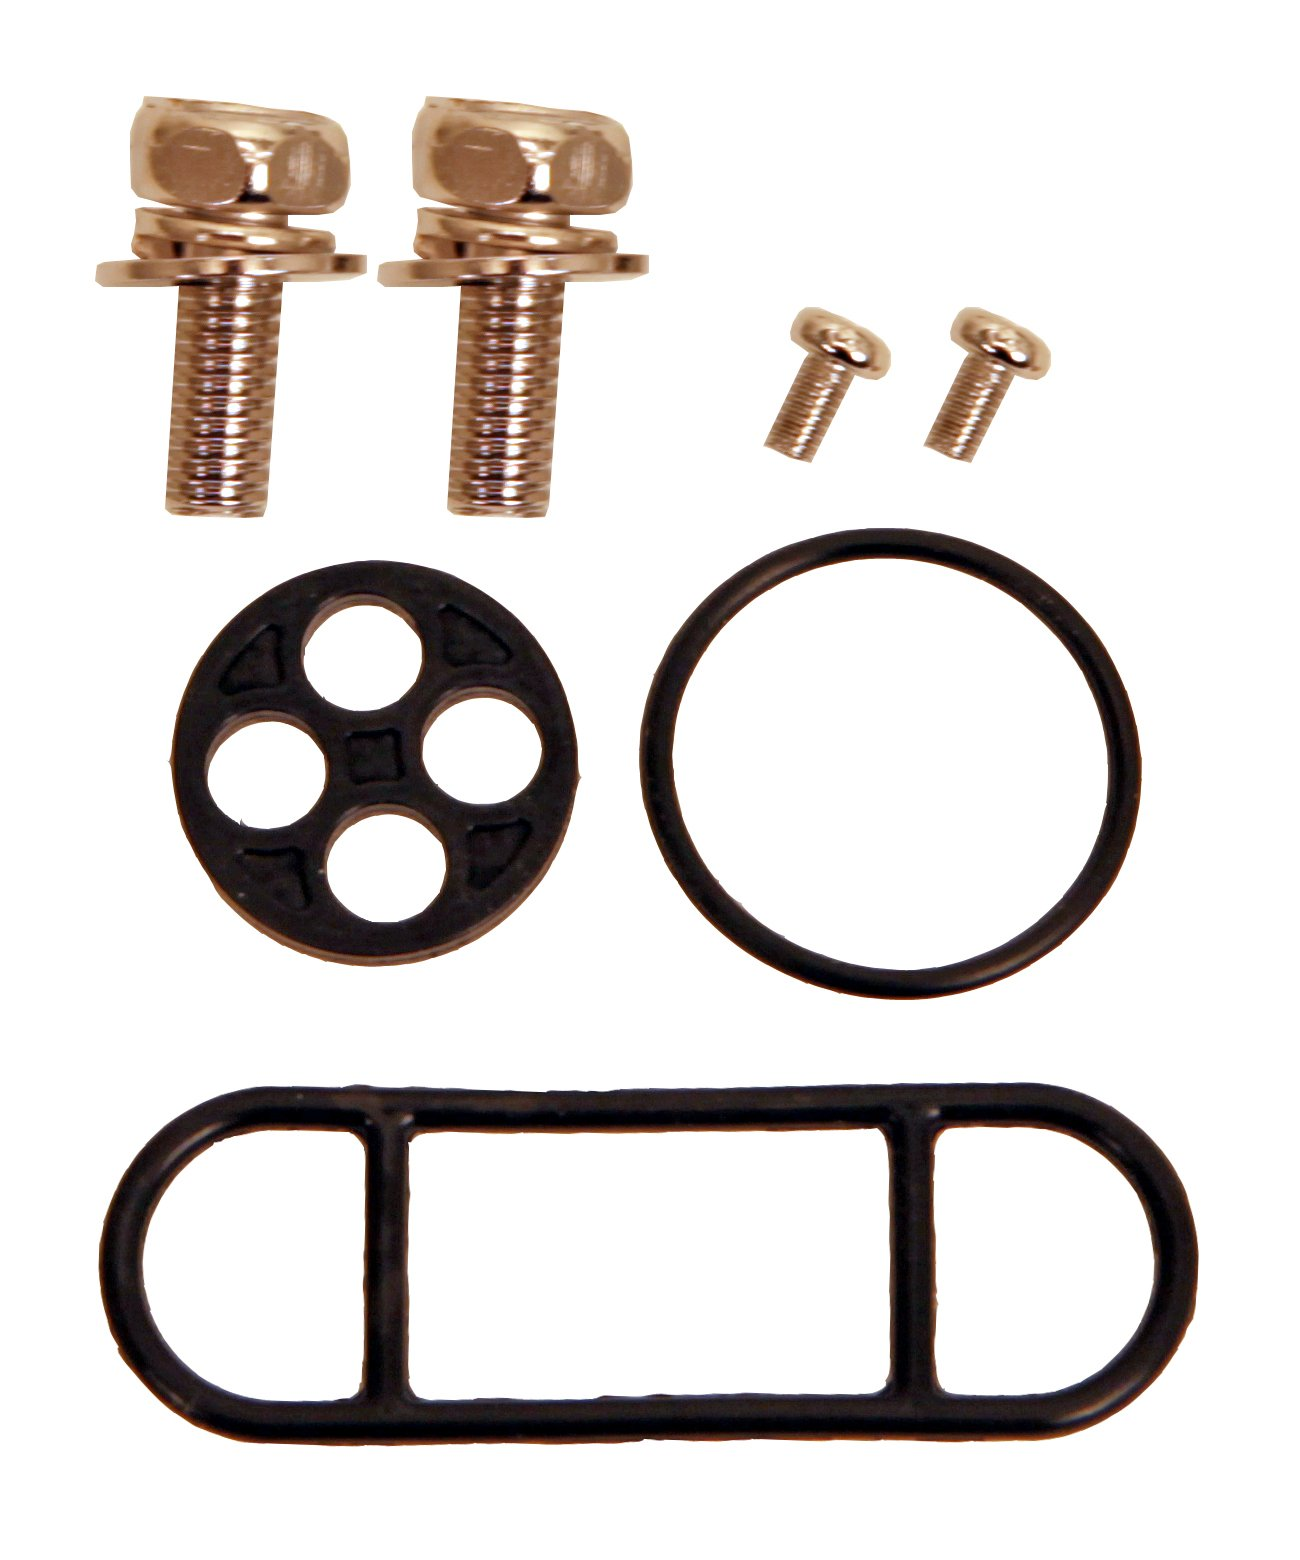 Outlaw Racing OR2610 Fuel Petcock Valve Shut Off Repair Rebuild Kit KDX200/220